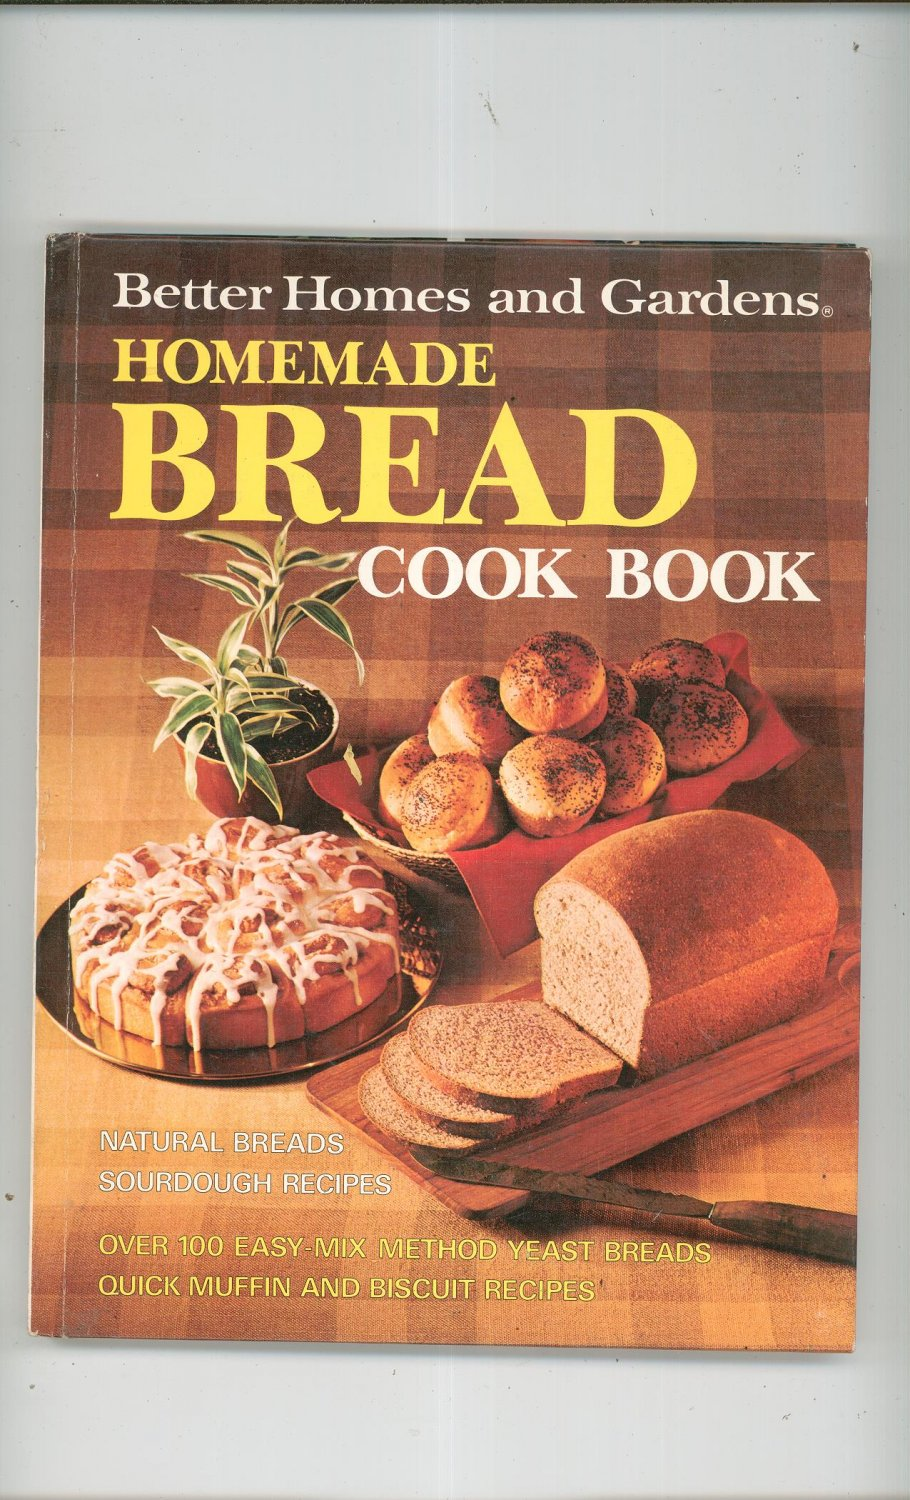 Better homes and gardens homemade bread cookbook 069600660x vintage 1978 Better homes and gardens house painting tool